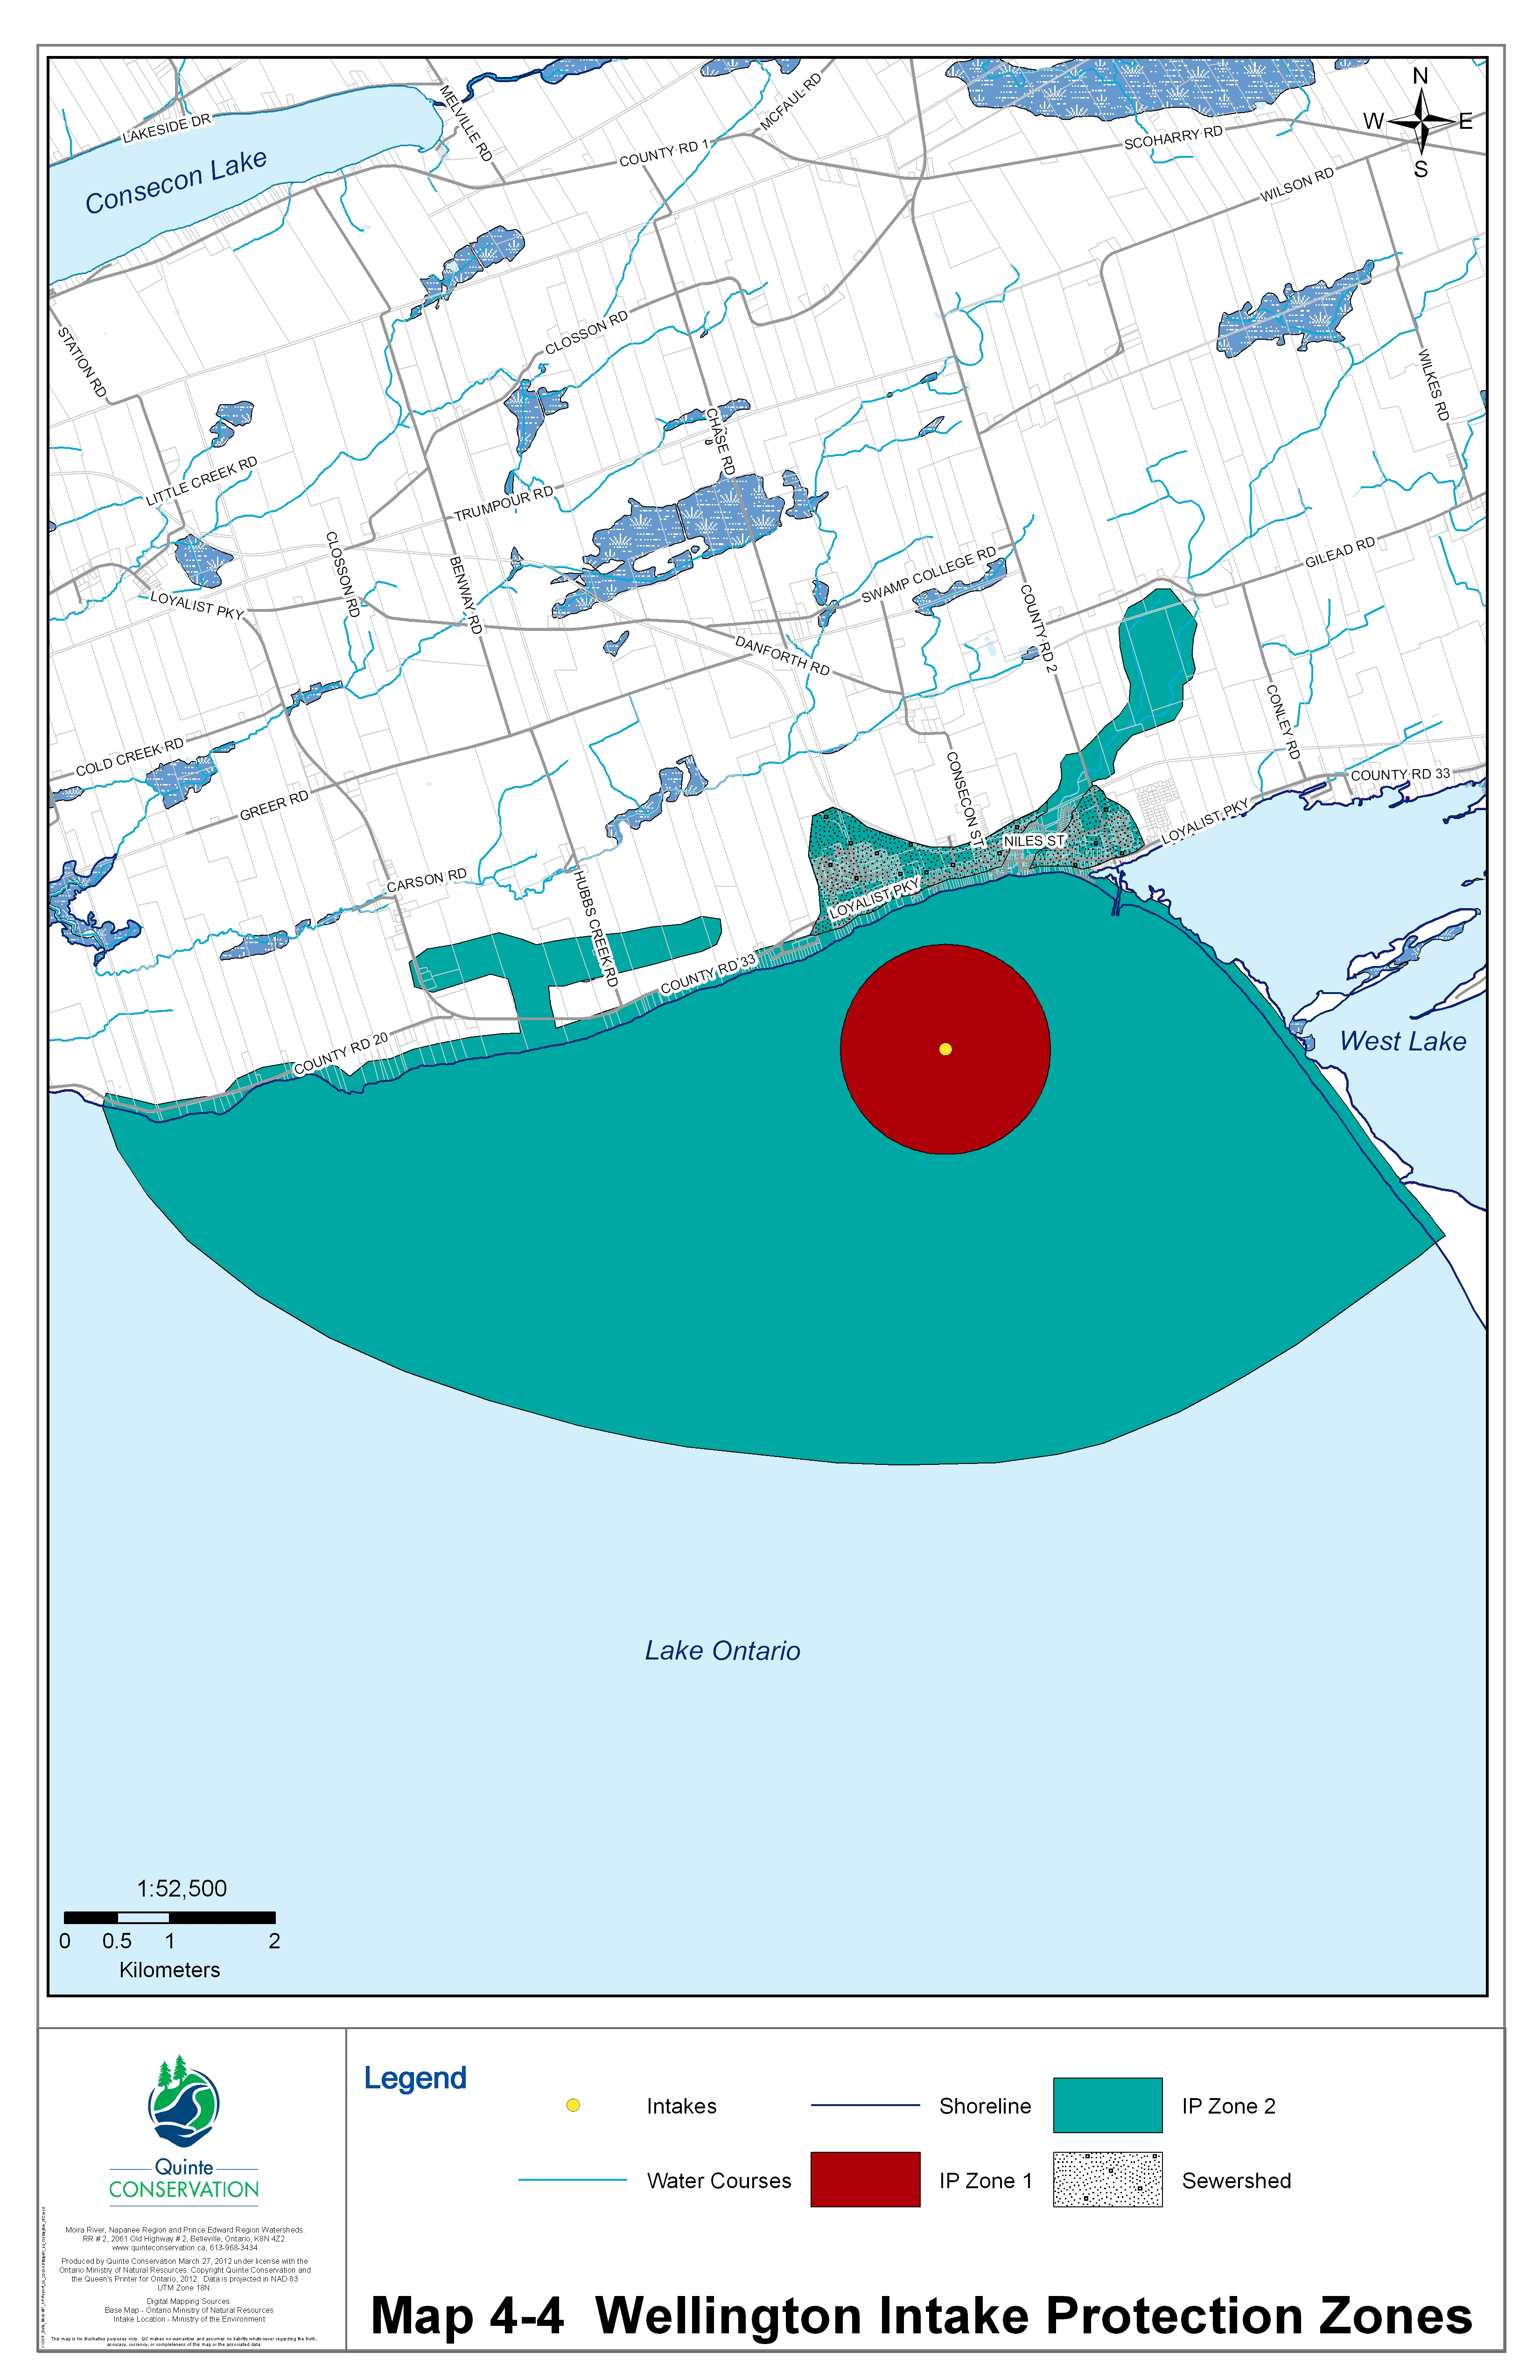 Drinking water systems map for PEC and Wellington